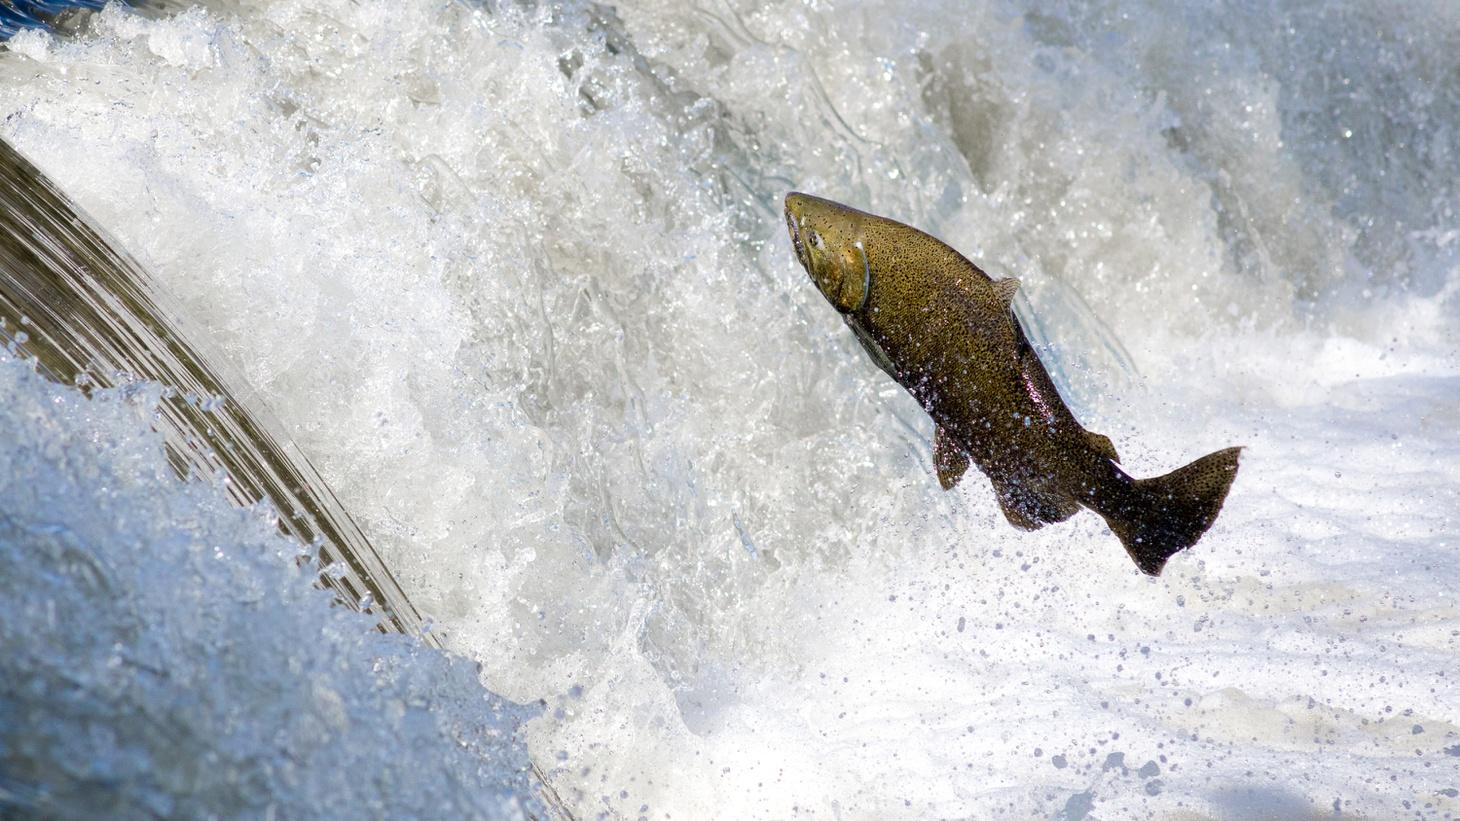 """The AquaAdvantage salmon has been genetically altered to grow faster than other Atlantic salmon. AquaBounty technology, which produced it, says, """"It can be farmed close to major consumer markets in a more sustainable manner."""" It's taken 20 years for the  FDA to approve the genetically modified salmon  for human consumption."""